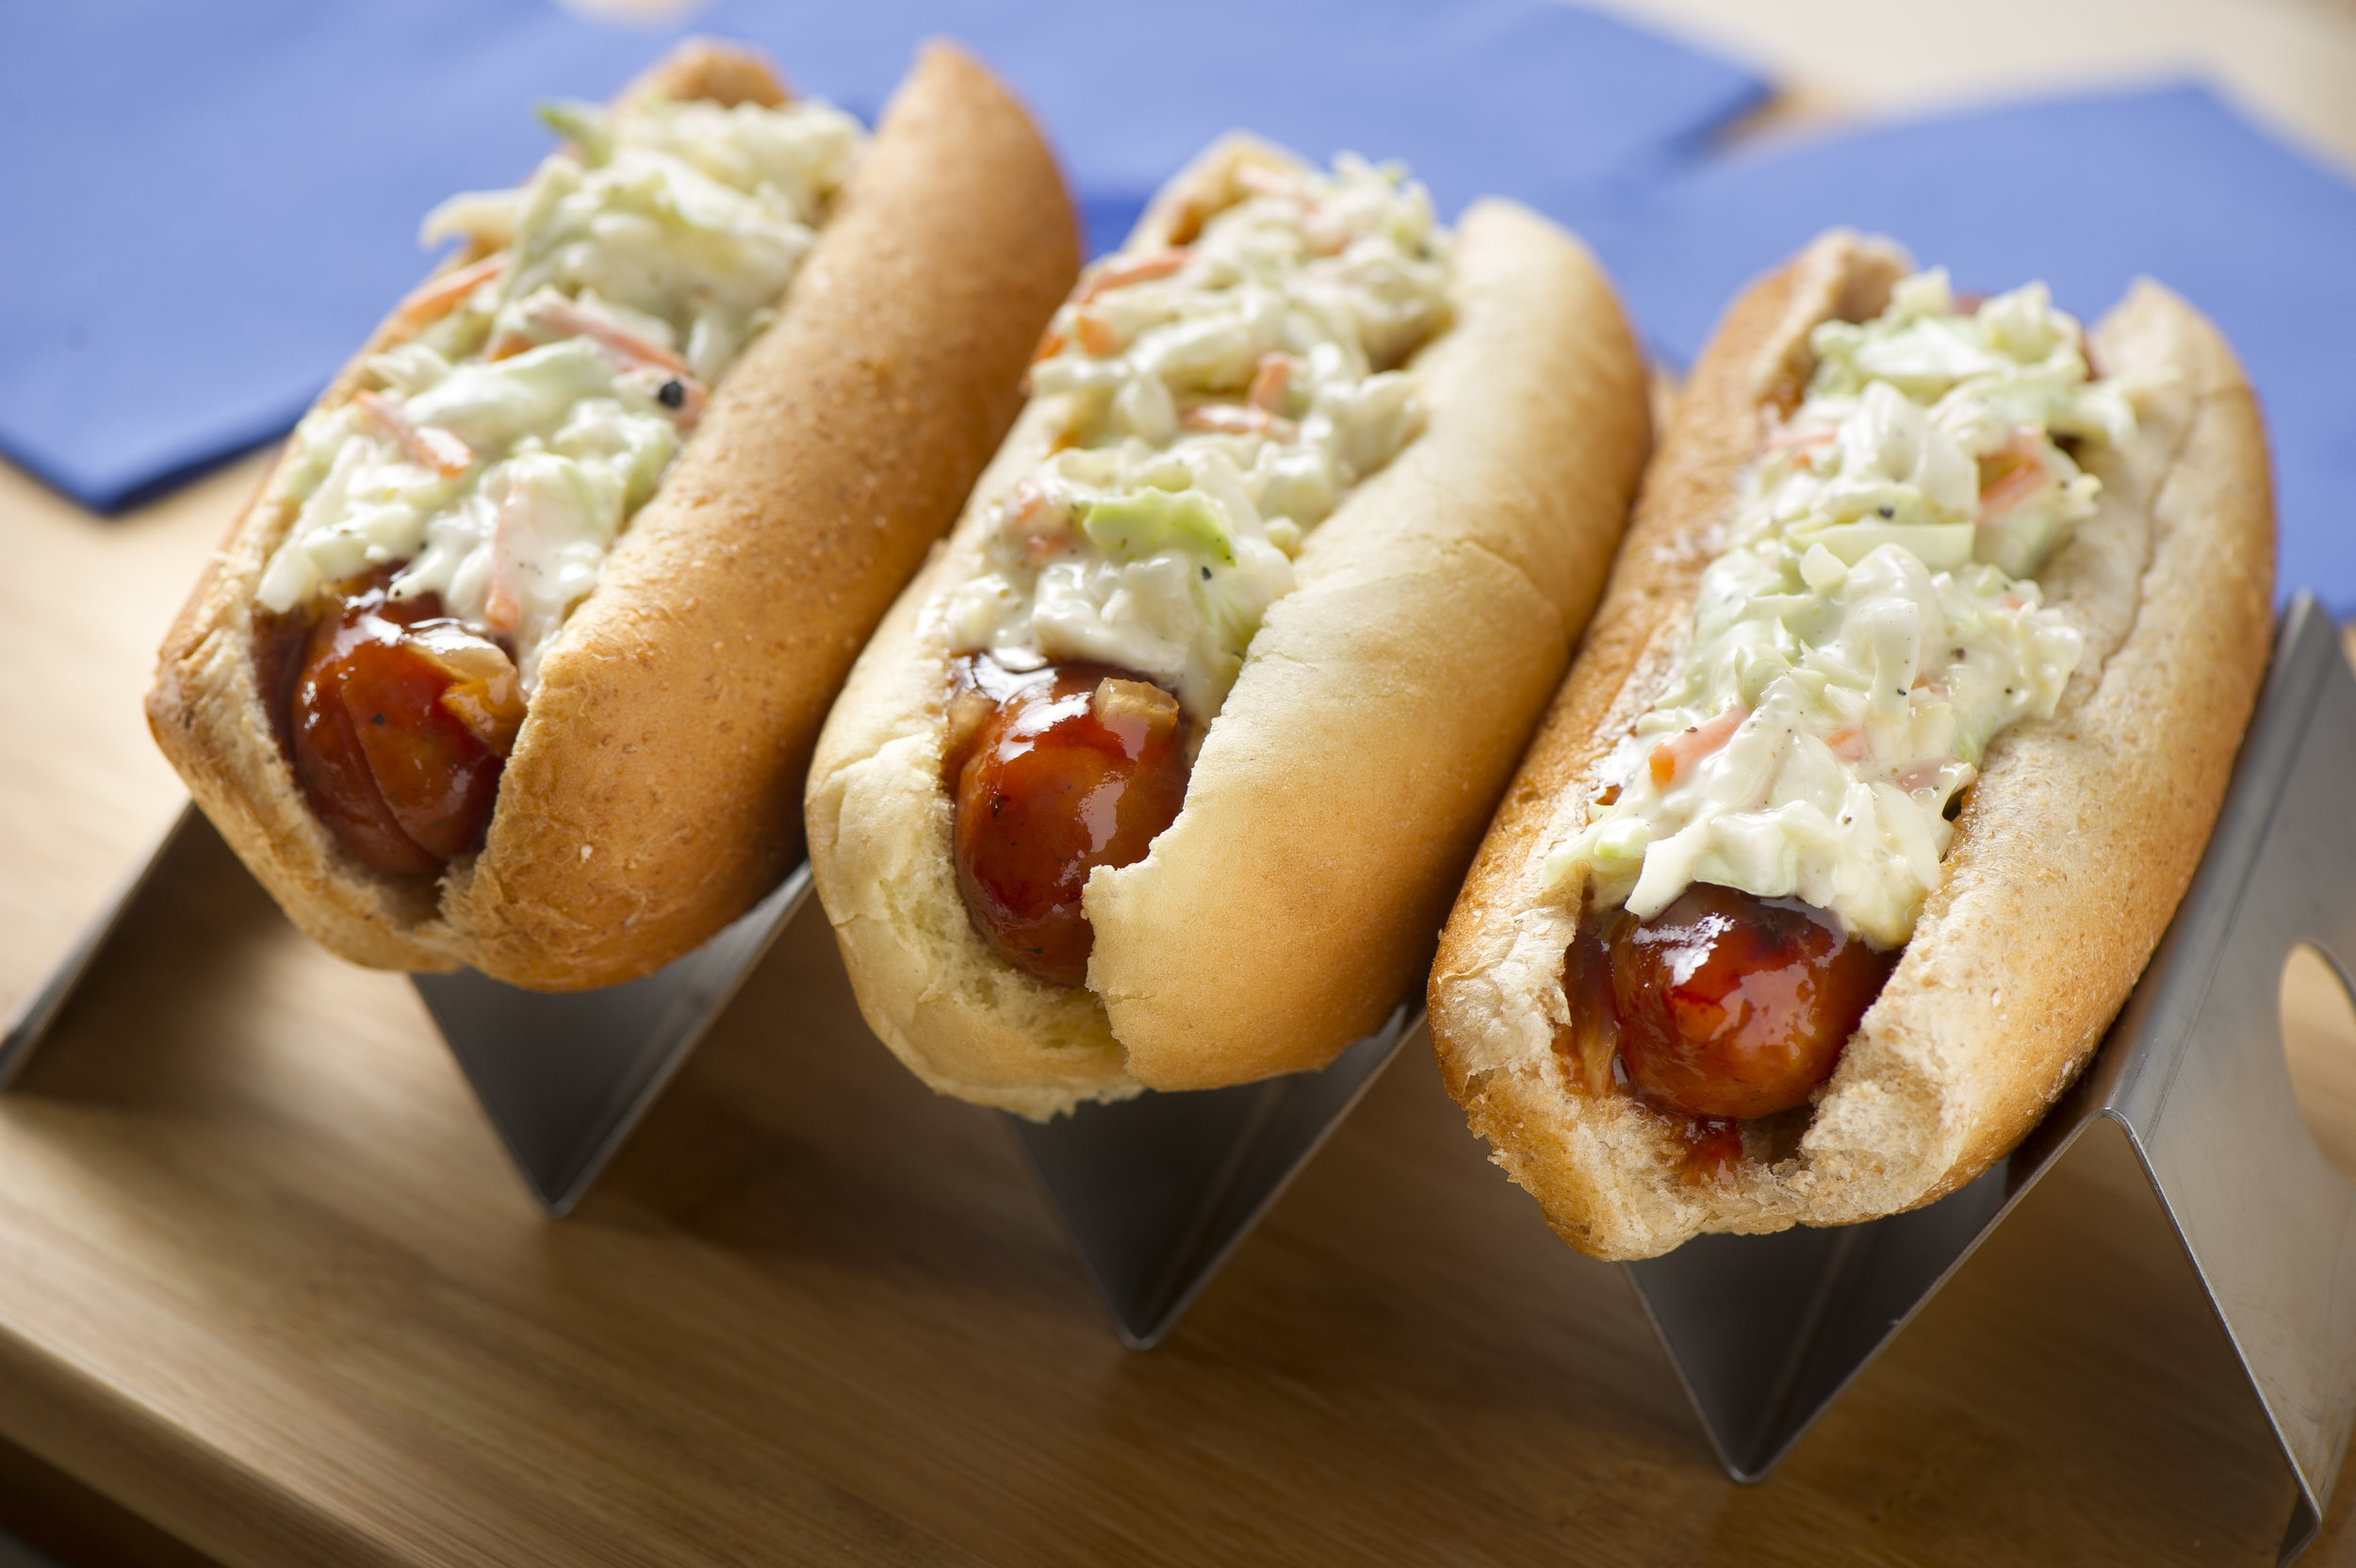 3. Bourbon Brats - Douse your Johnsonville brats with bourbon, top them with coleslaw, sit back, and enjoy the game! Your fans will appreciate the extra zing.